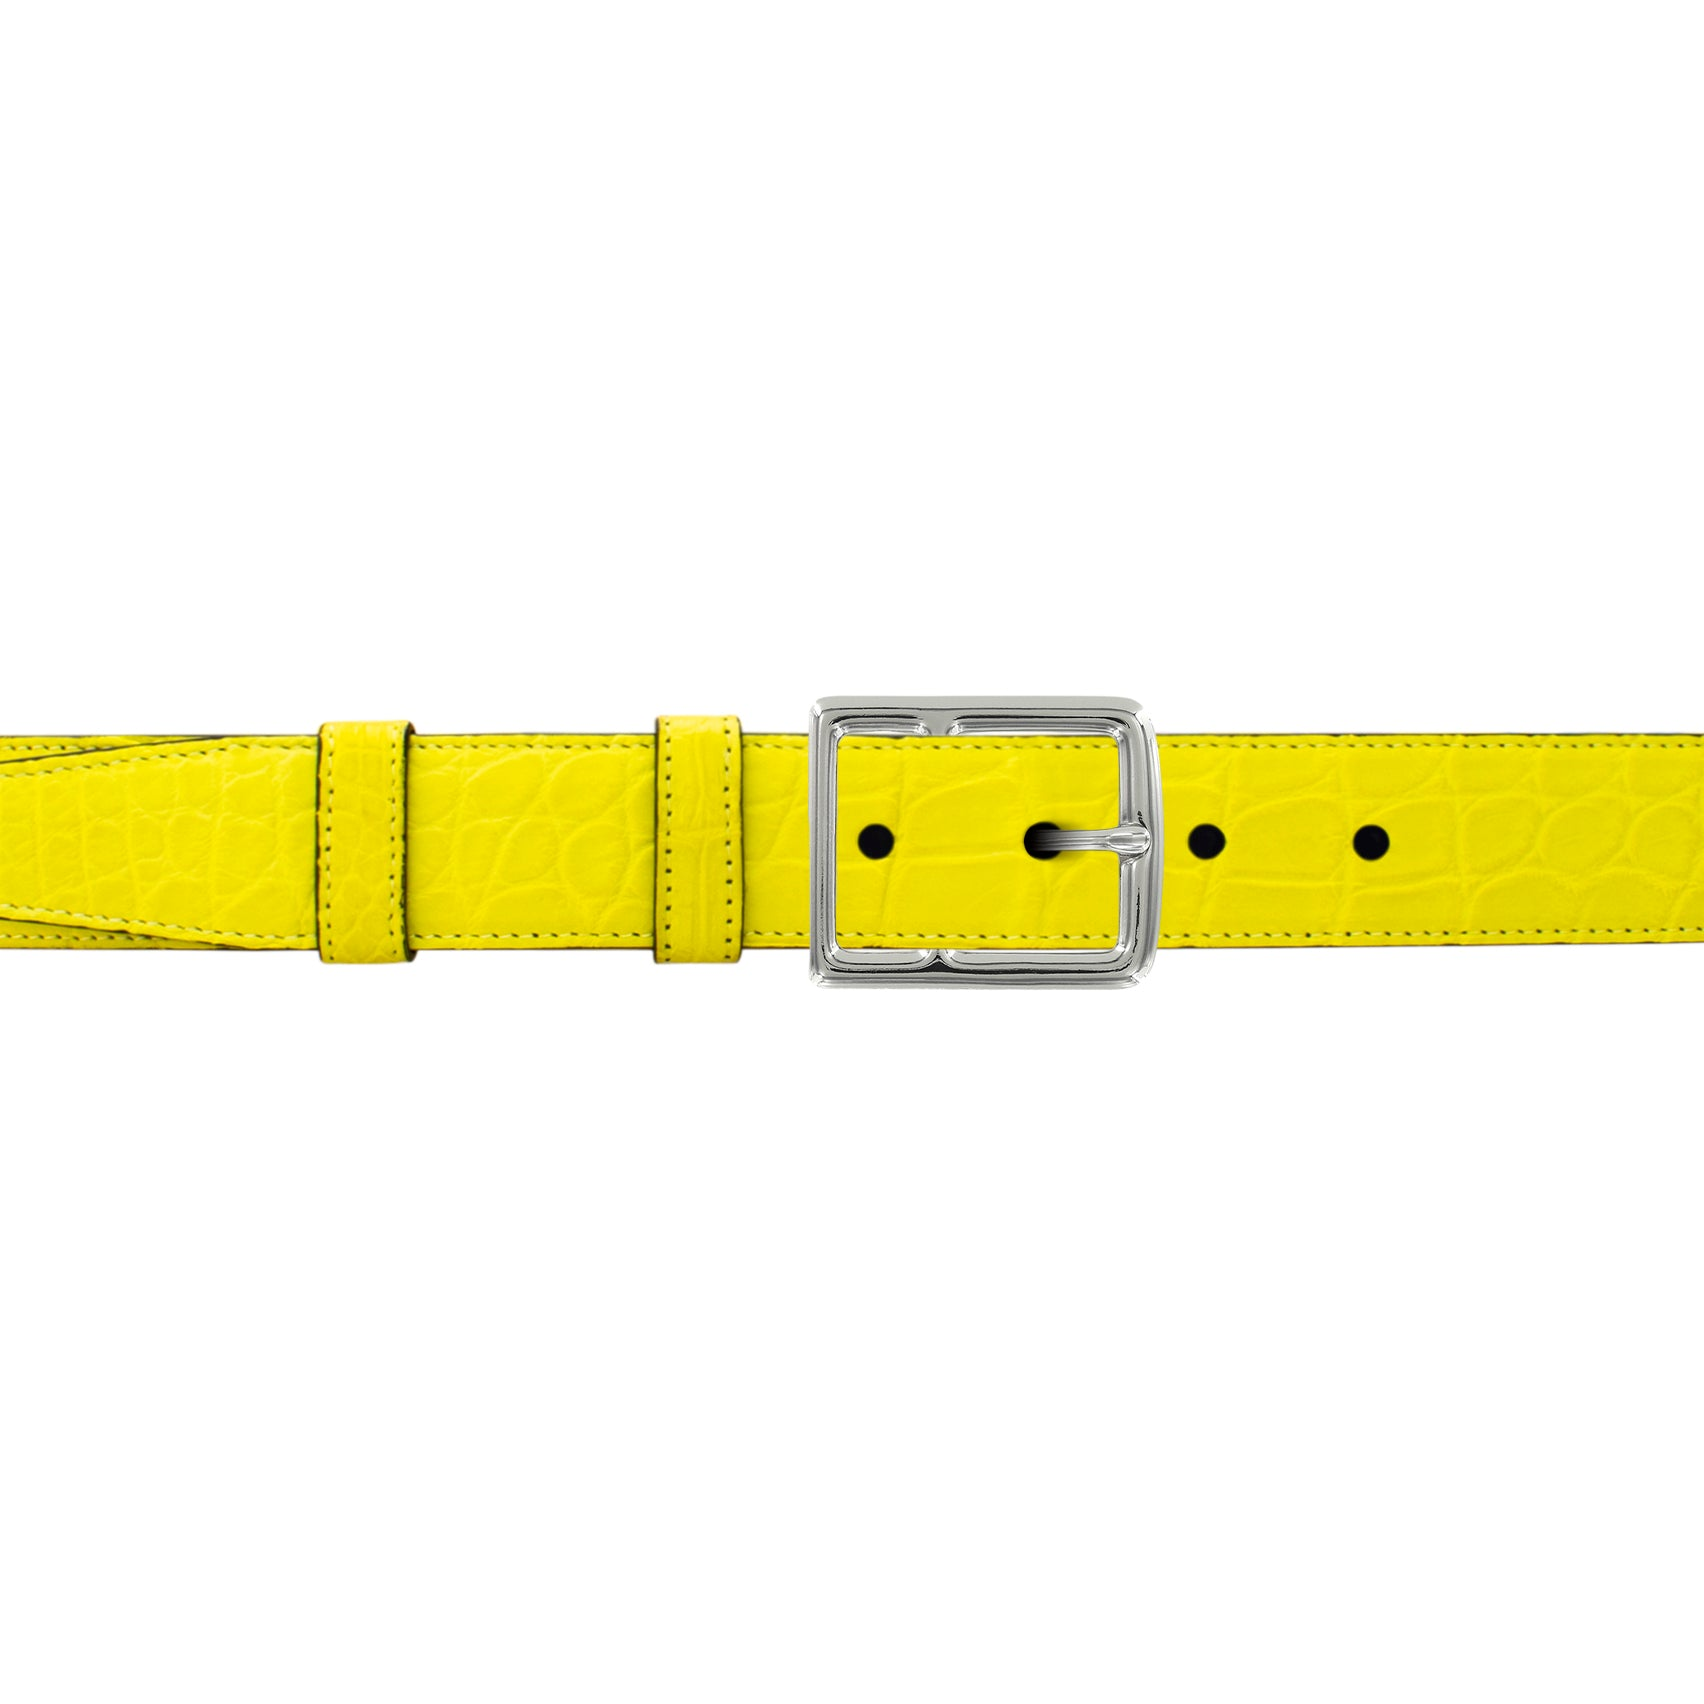 "1"" Canary Seasonal Belt with Crawford Casual Buckle in Polished Nickel"